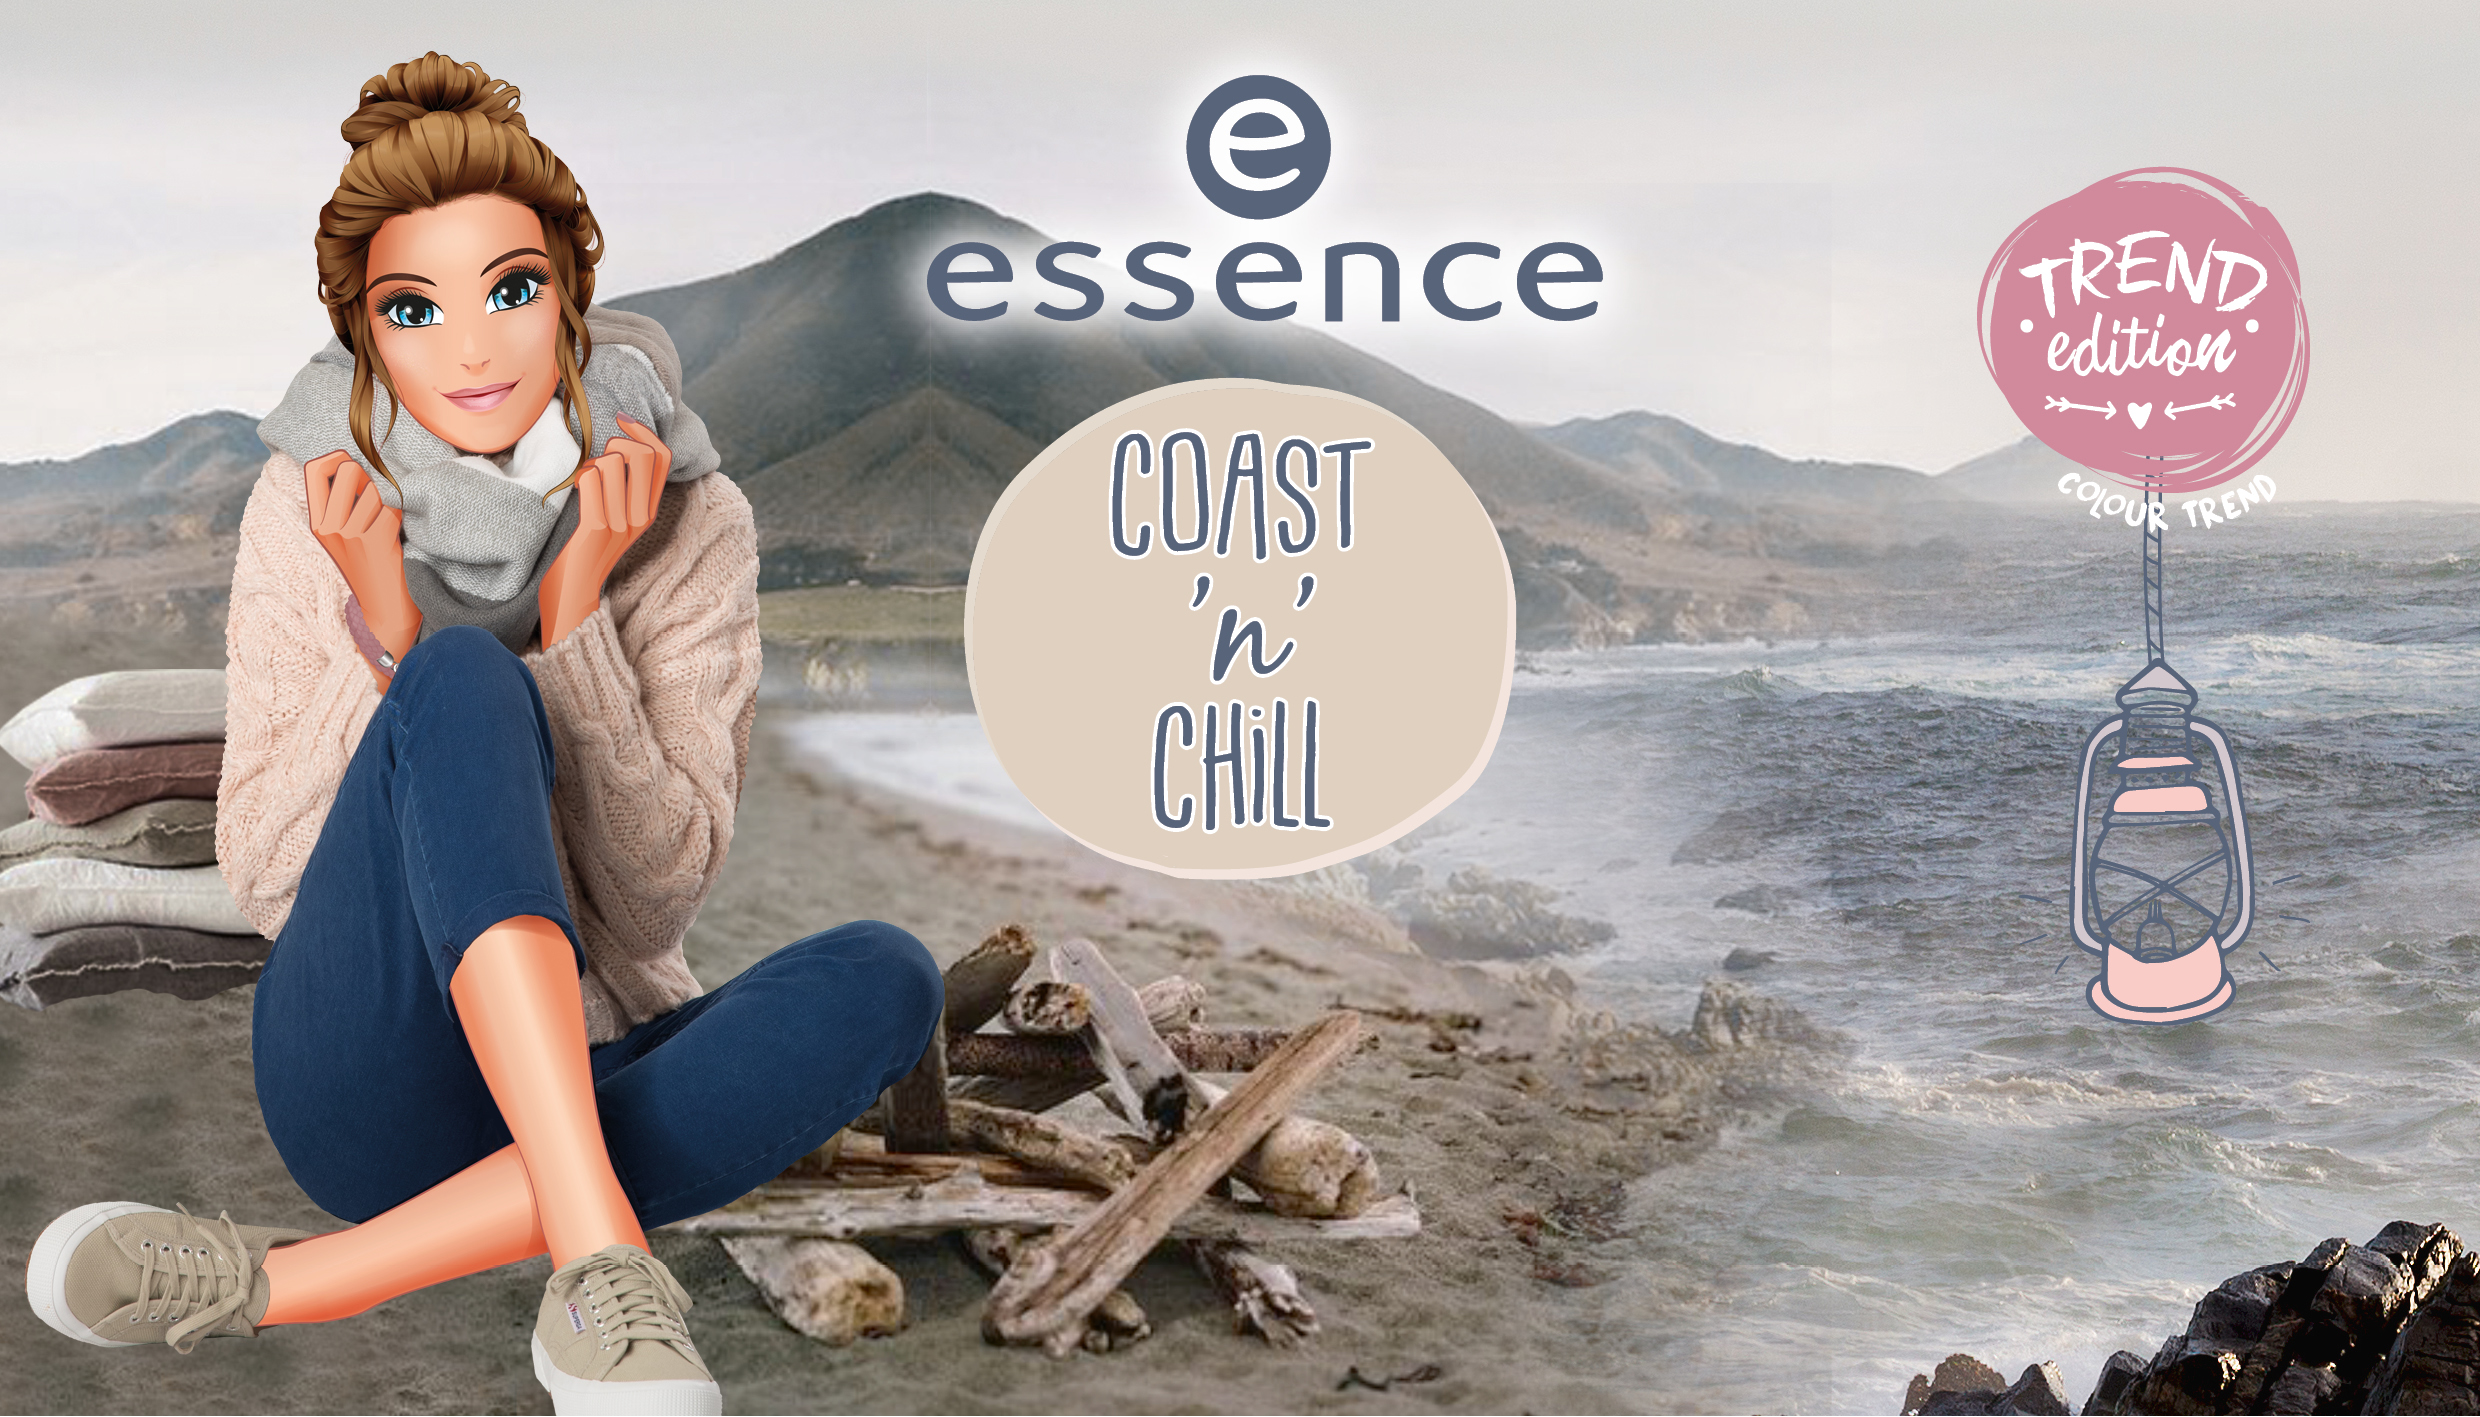 ess_CoastnChill_Header